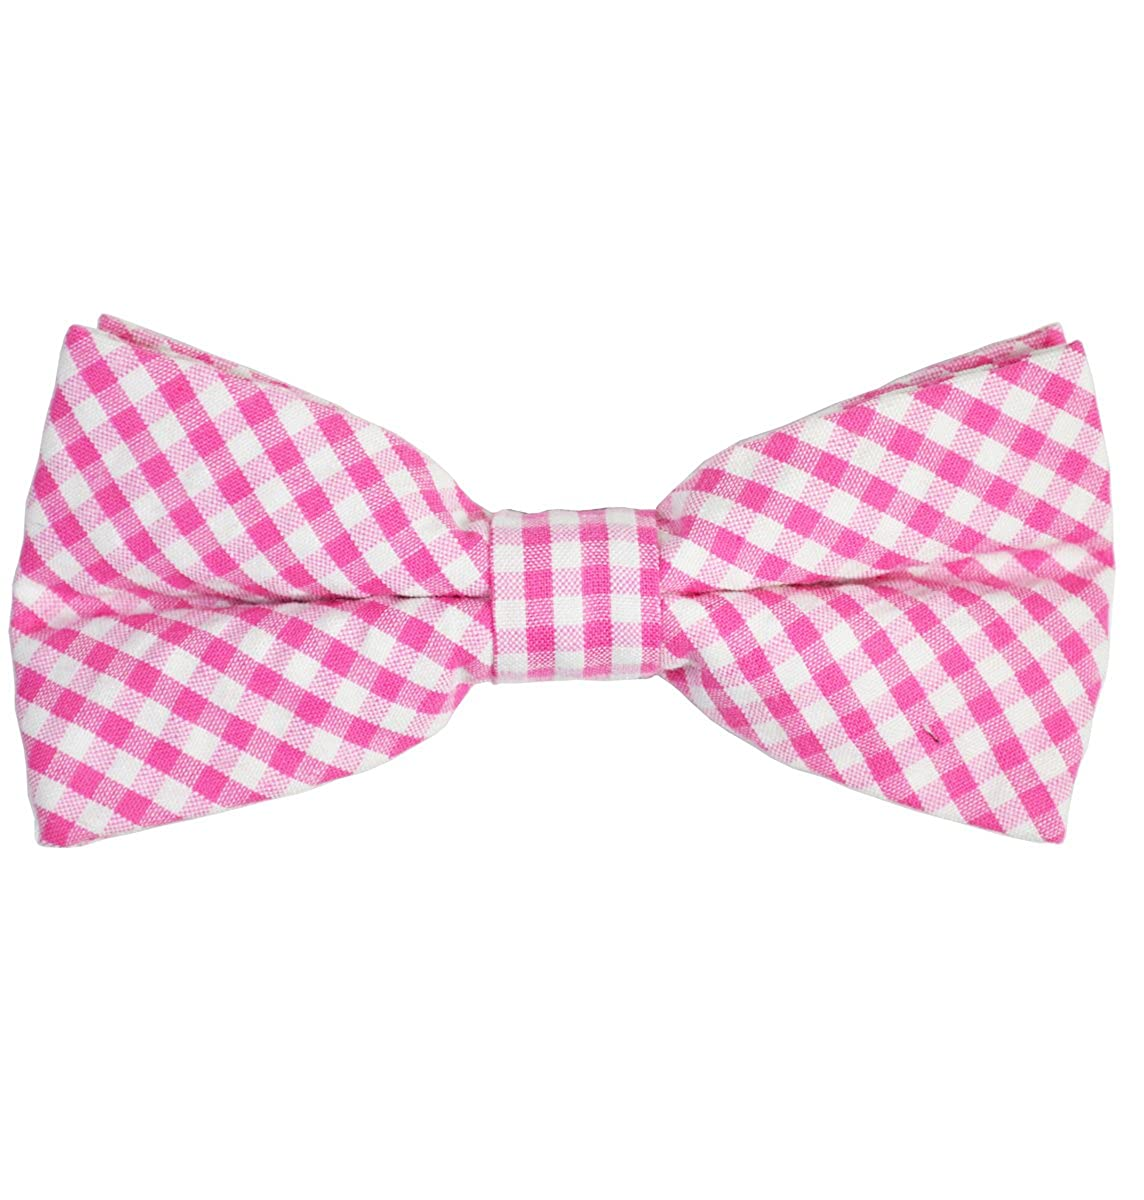 Paul Malone Cotton Bow Tie Pink Gingham